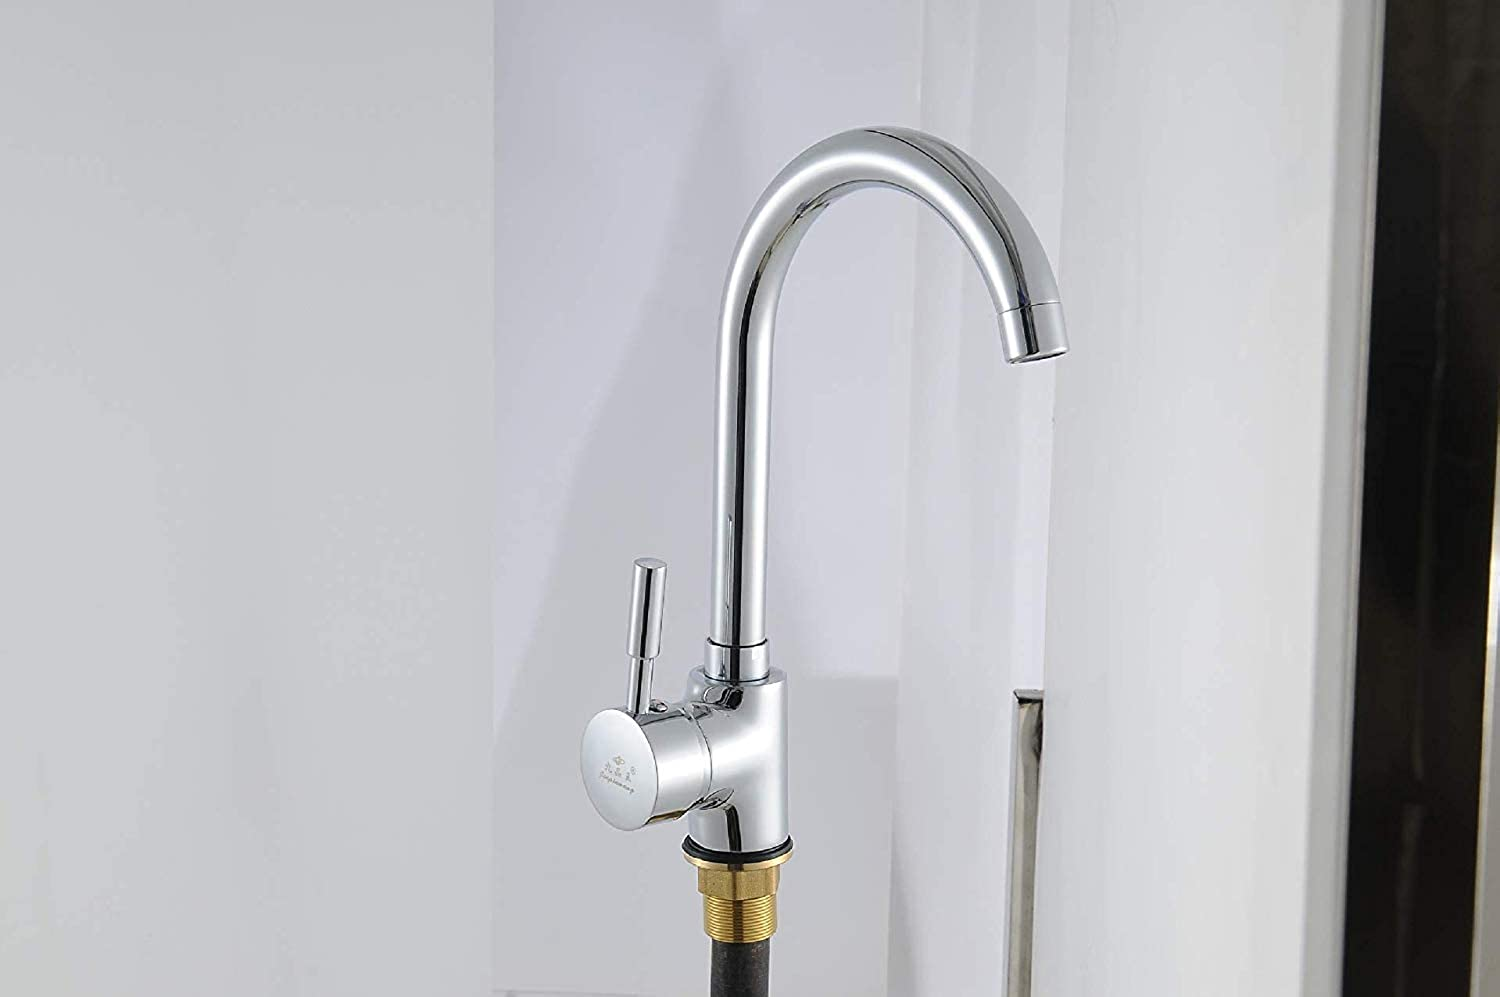 Marcu HOME Hot and cold faucet, copper body washing vegetable basin faucet